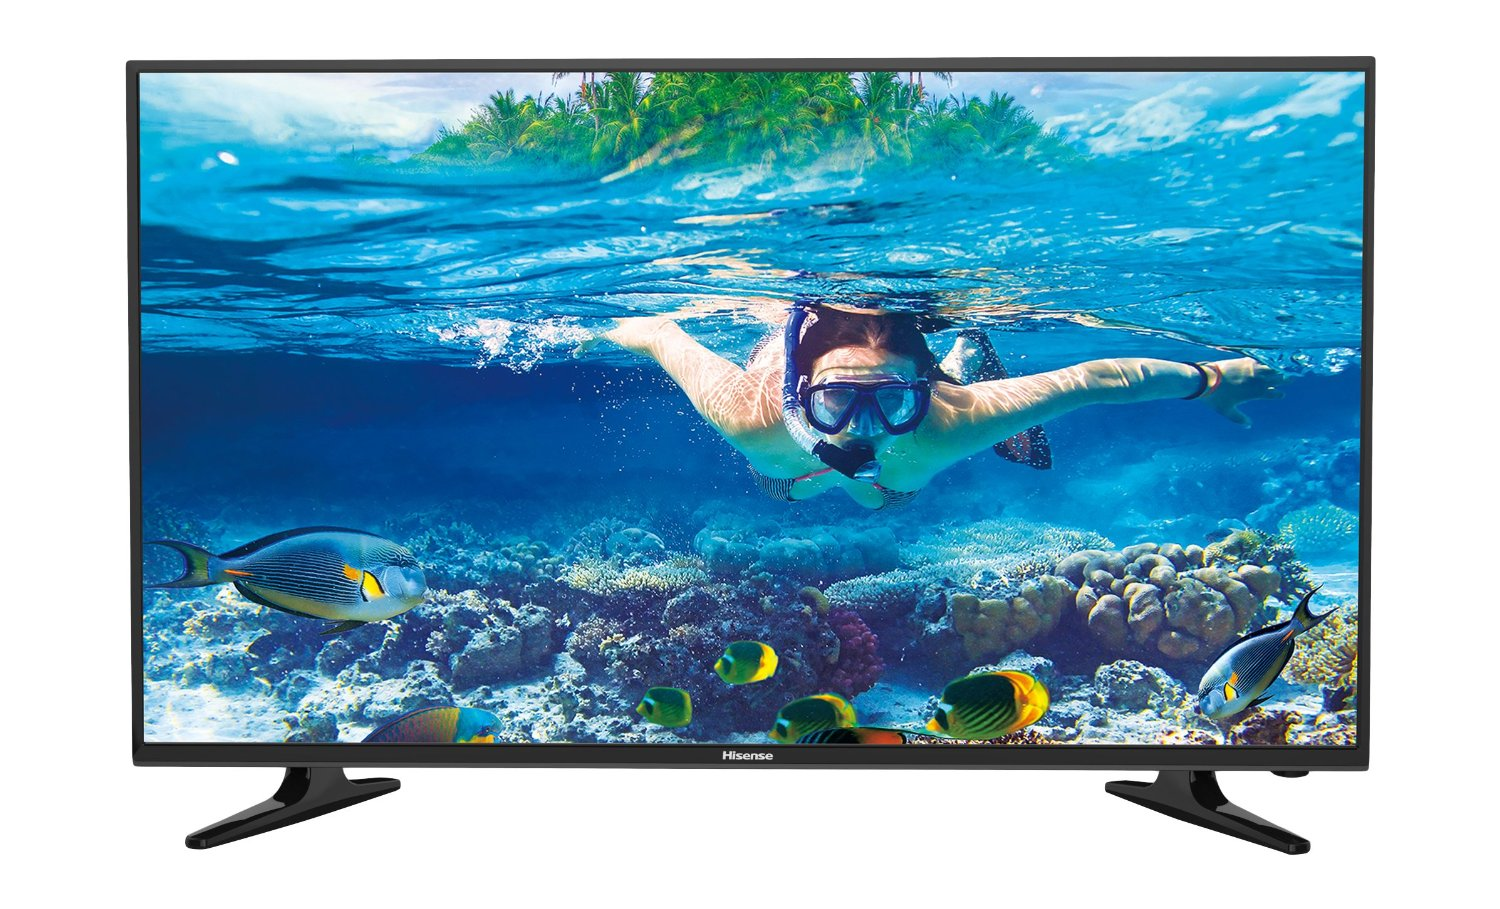 hisense lhd32d50ts 80cm 32 zoll led tv fernseher hd ready triple tuner eur 209 95 picclick de. Black Bedroom Furniture Sets. Home Design Ideas